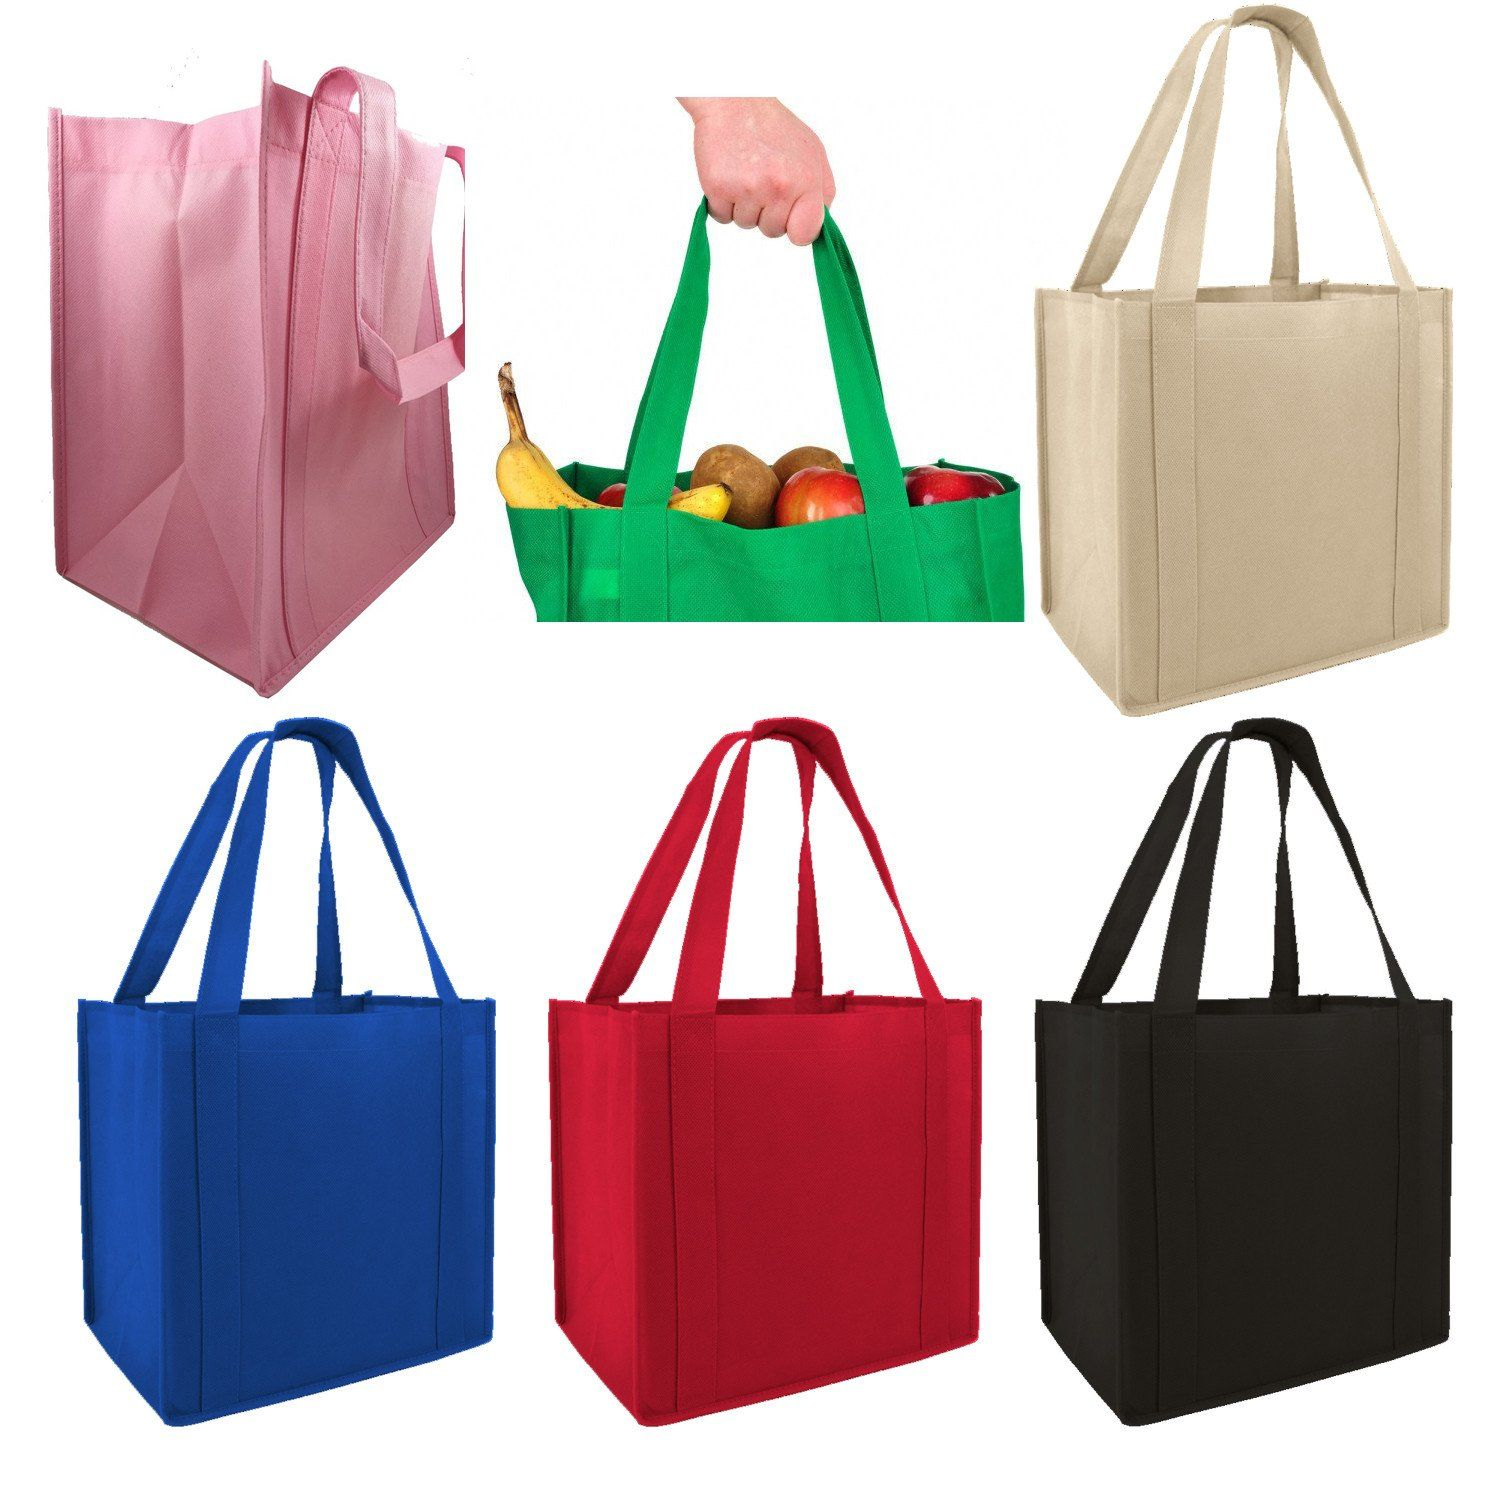 Wholesale Non Woven Polypropylene Tote Bags In Bulk Medium Non Woven Bags Woven Tote Bag Shopping Tote Bag